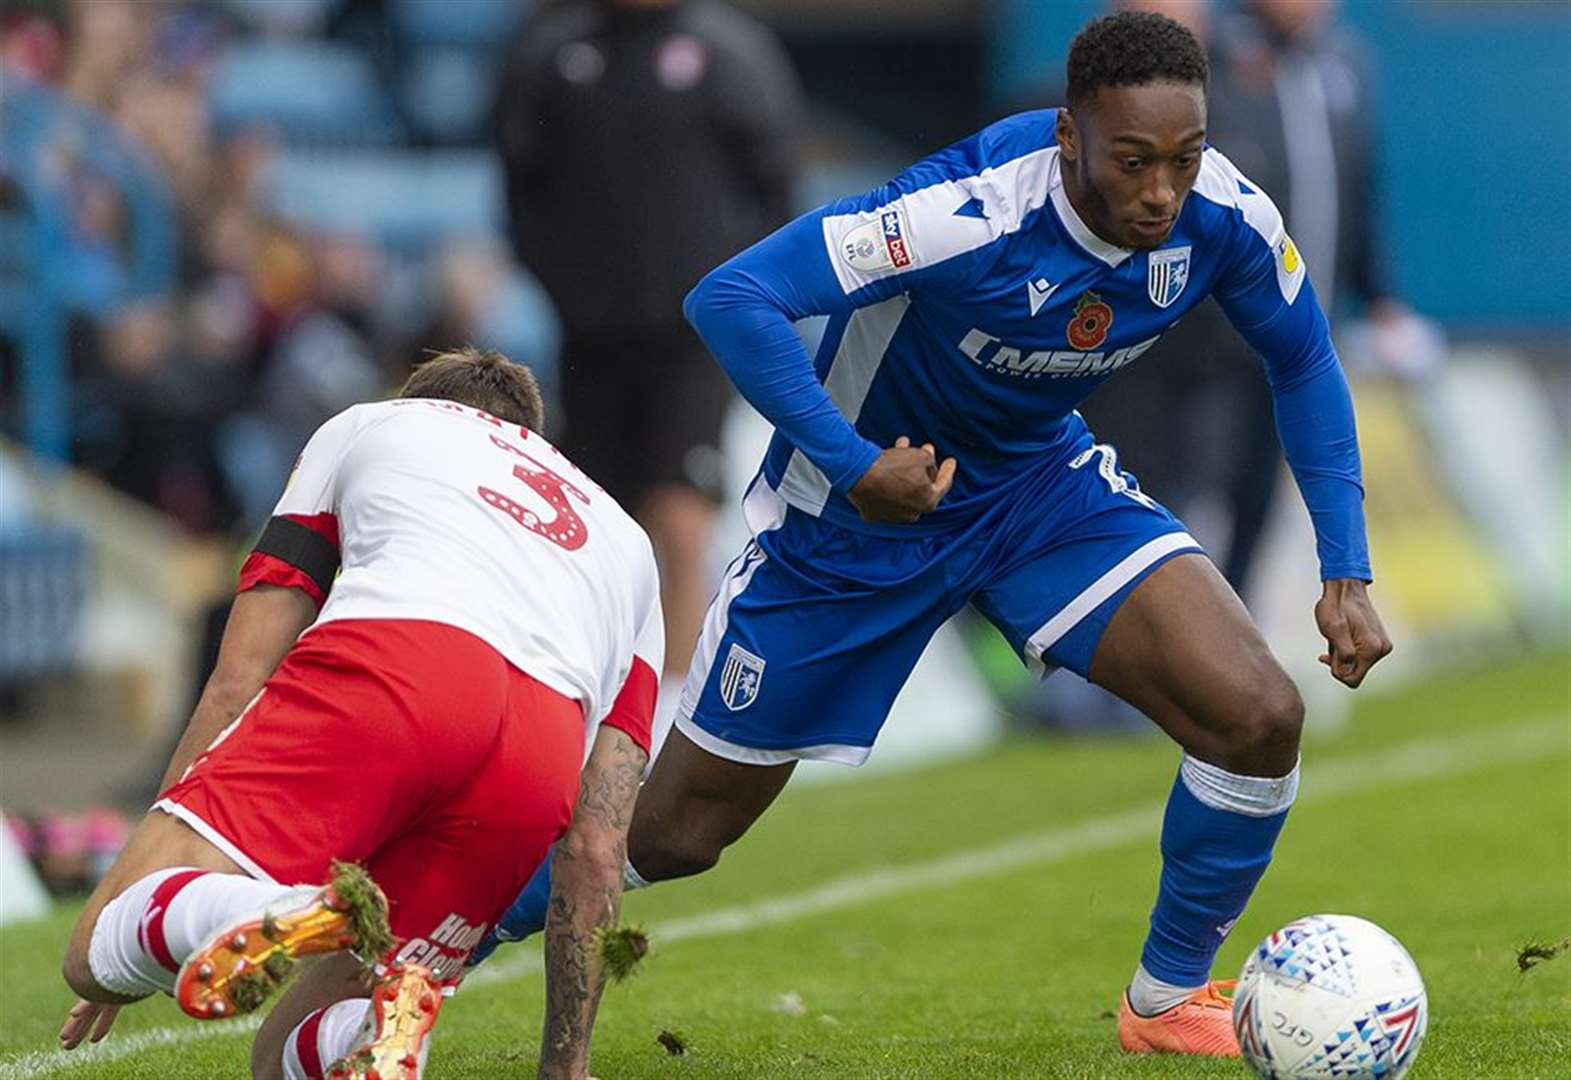 Report: No way back for Gills after mix-up